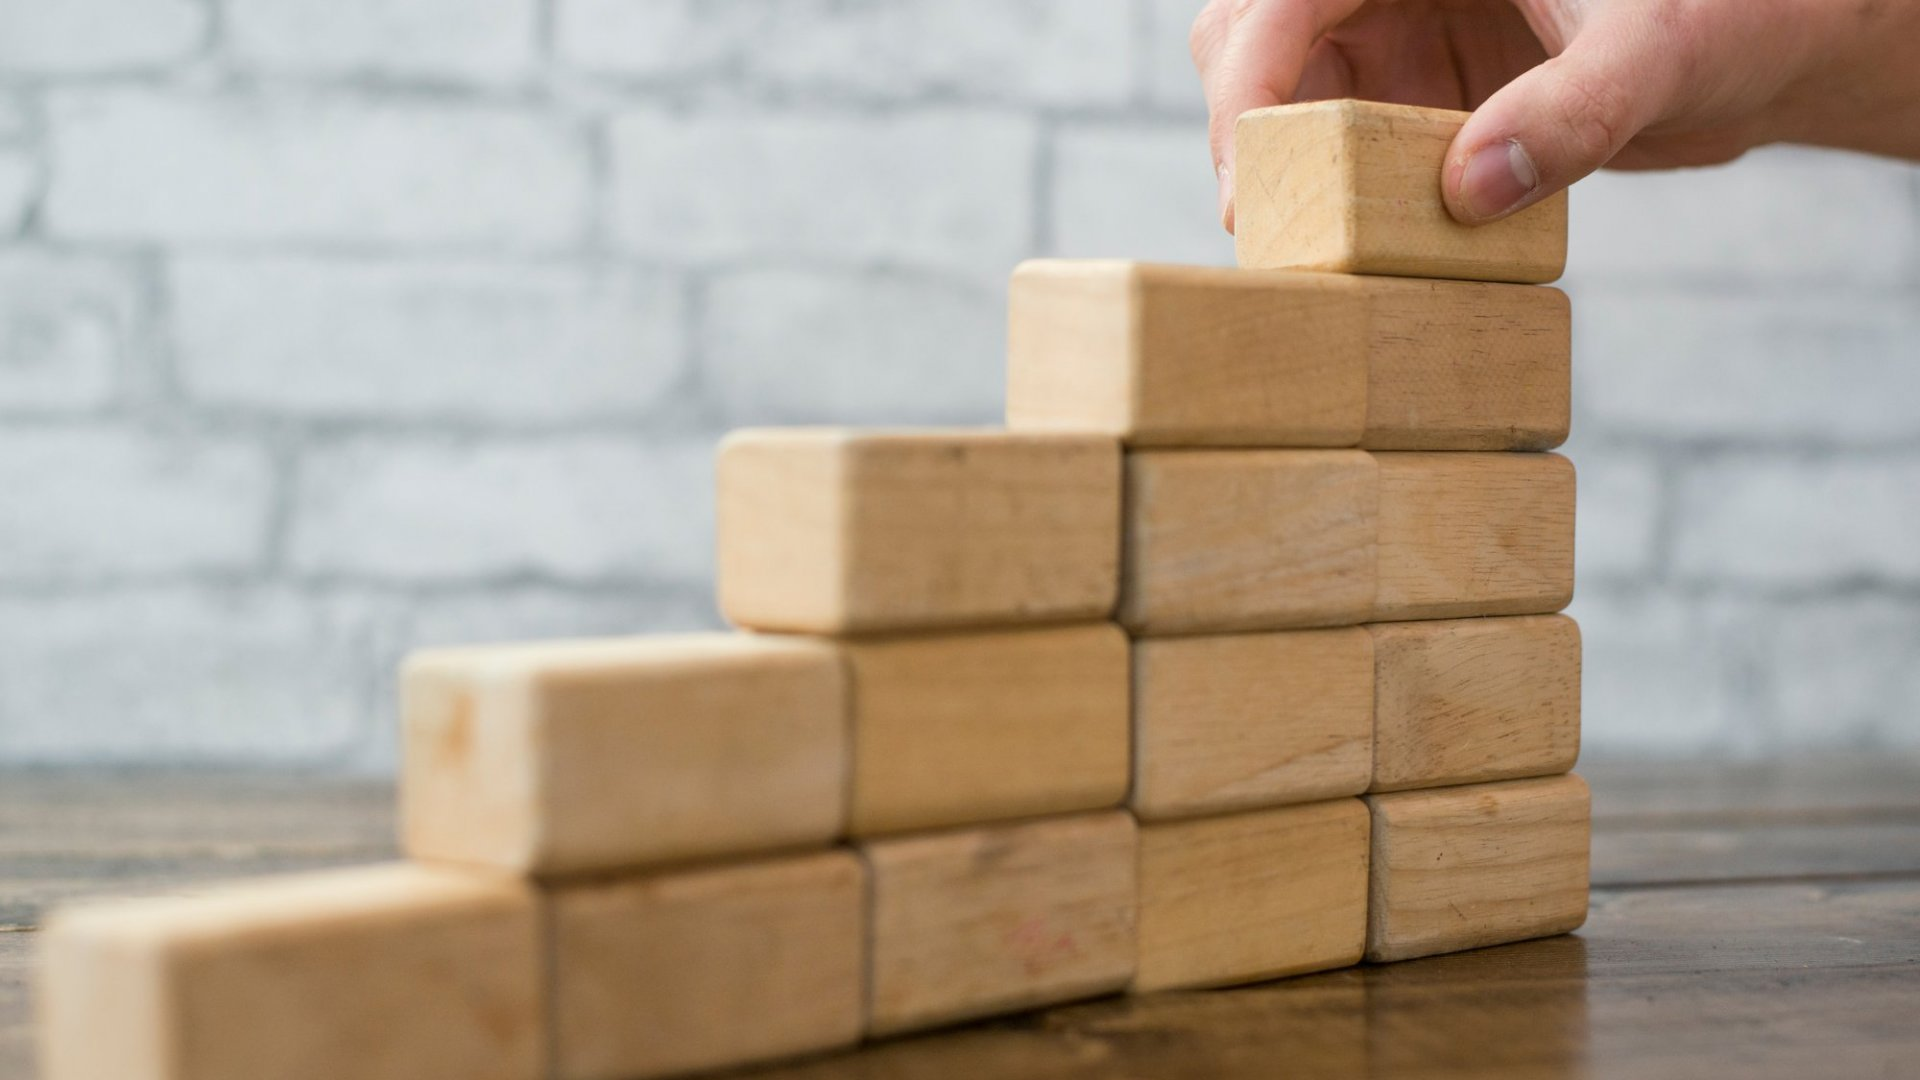 5 Building Blocks of a Great Company Culture